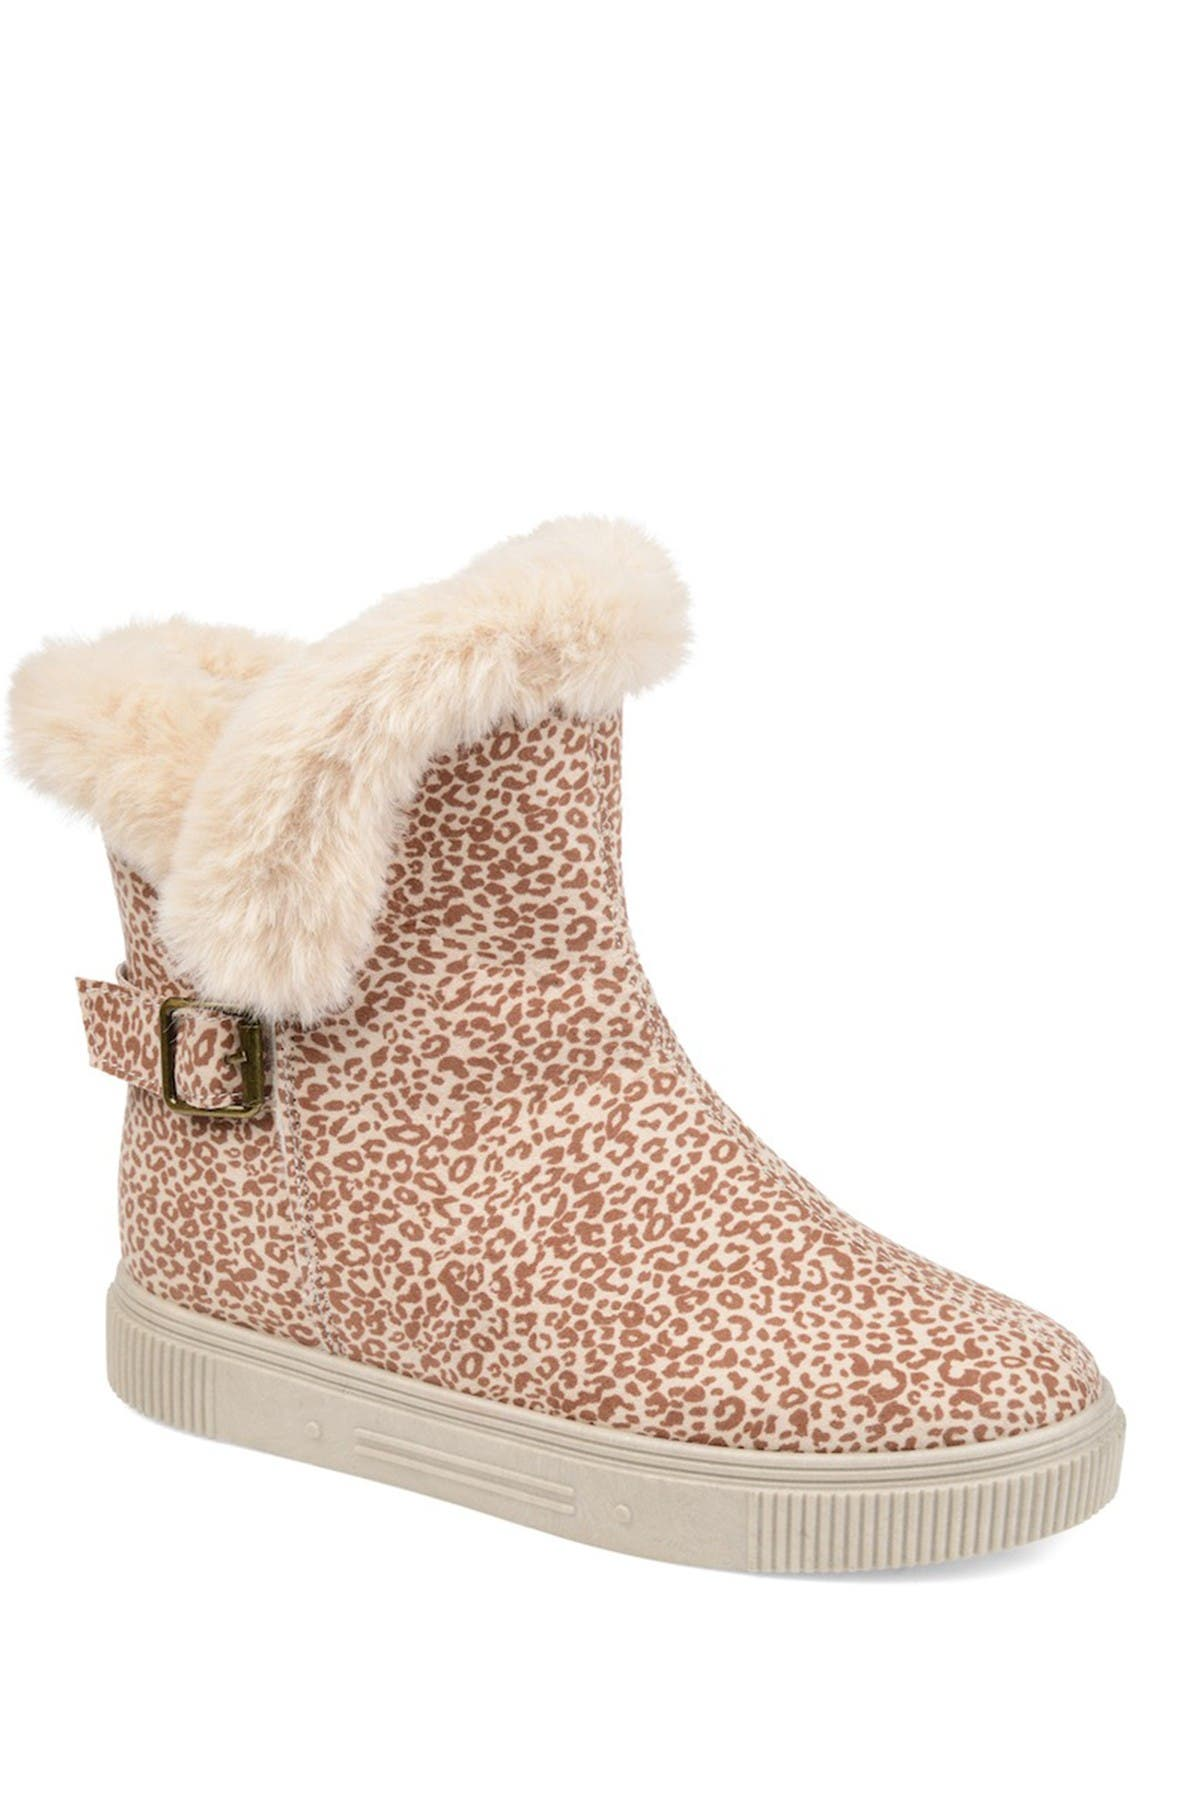 Image of JOURNEE Collection Sibby Faux Fur Lined Boot